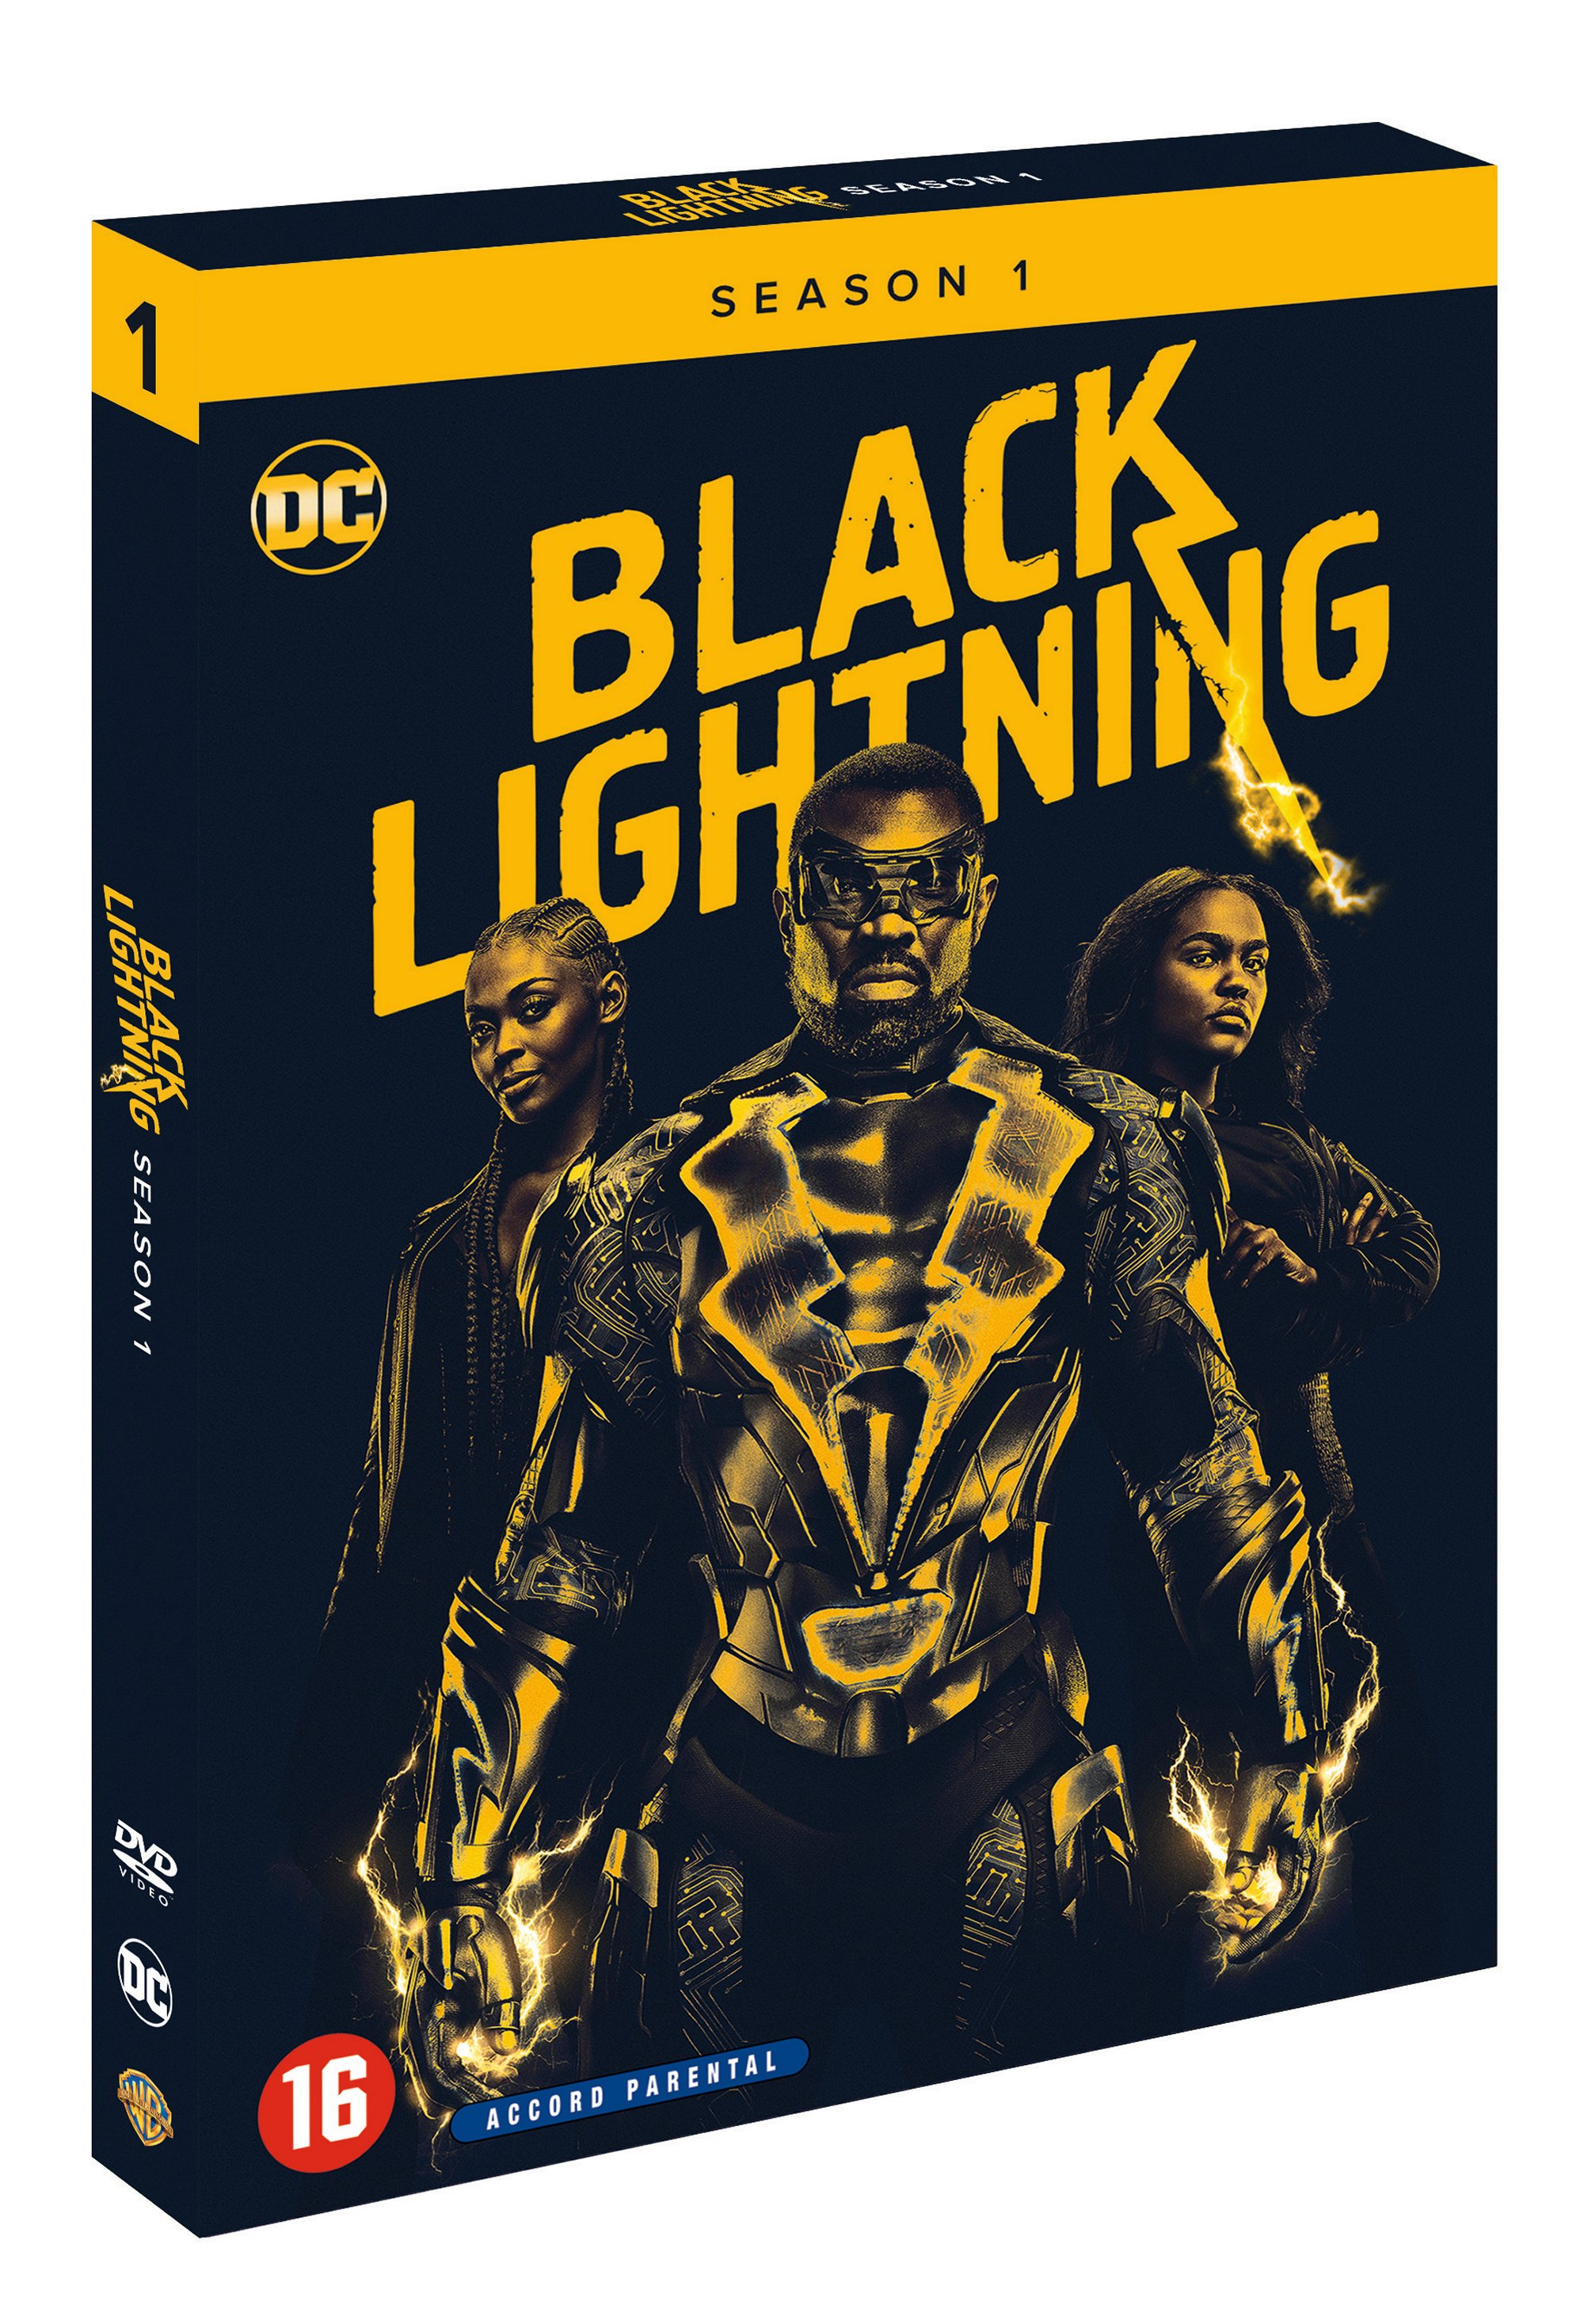 Review : Black Lightning Season 1 (DVD)